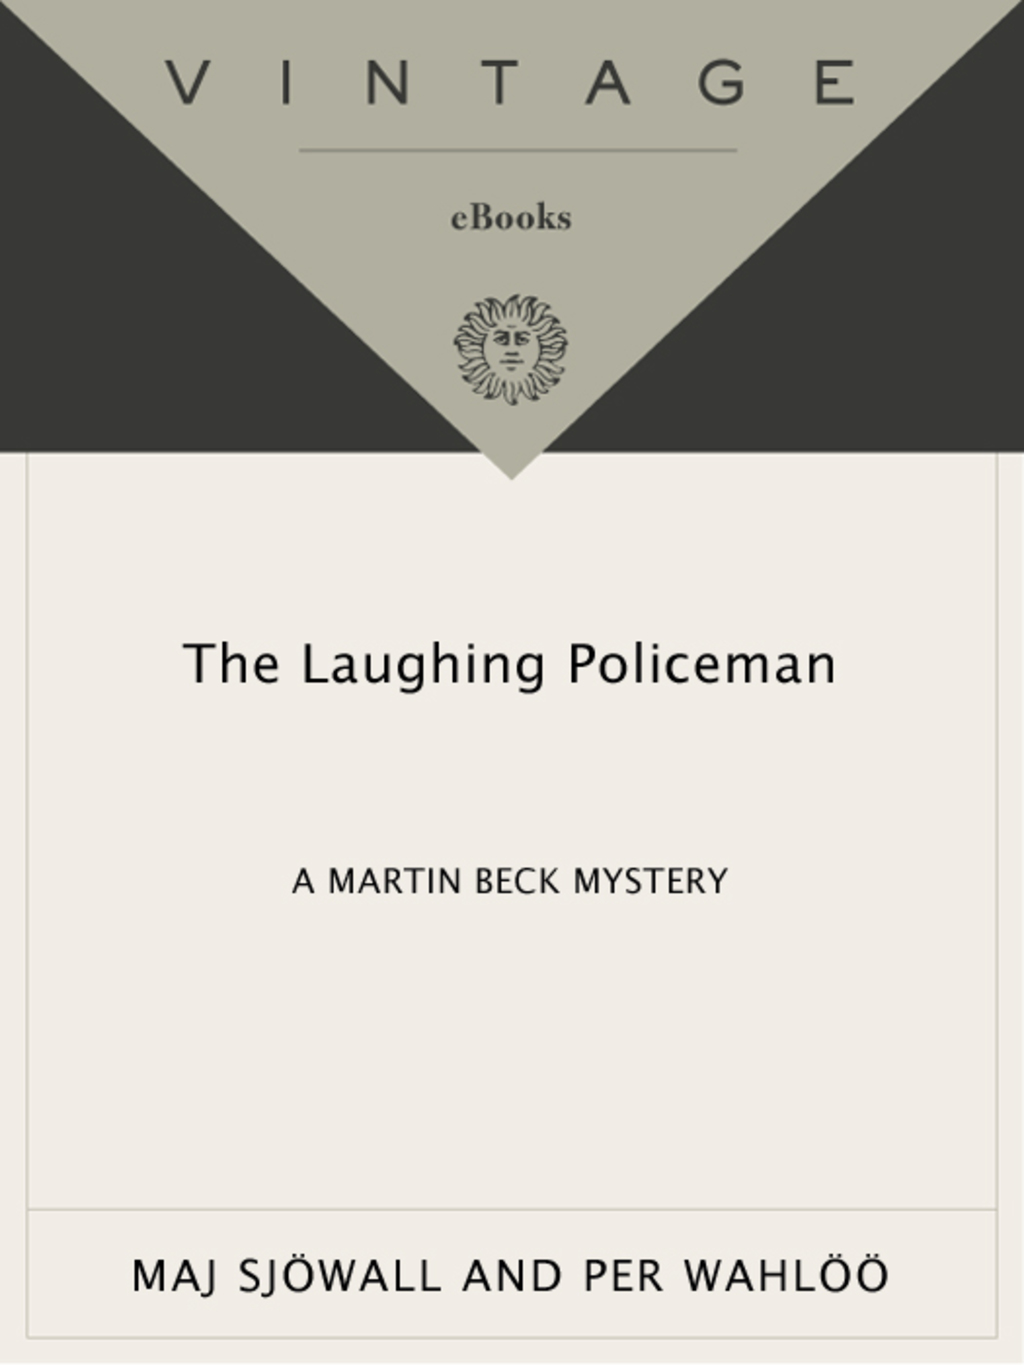 The Laughing Policeman (ebook) eBooks